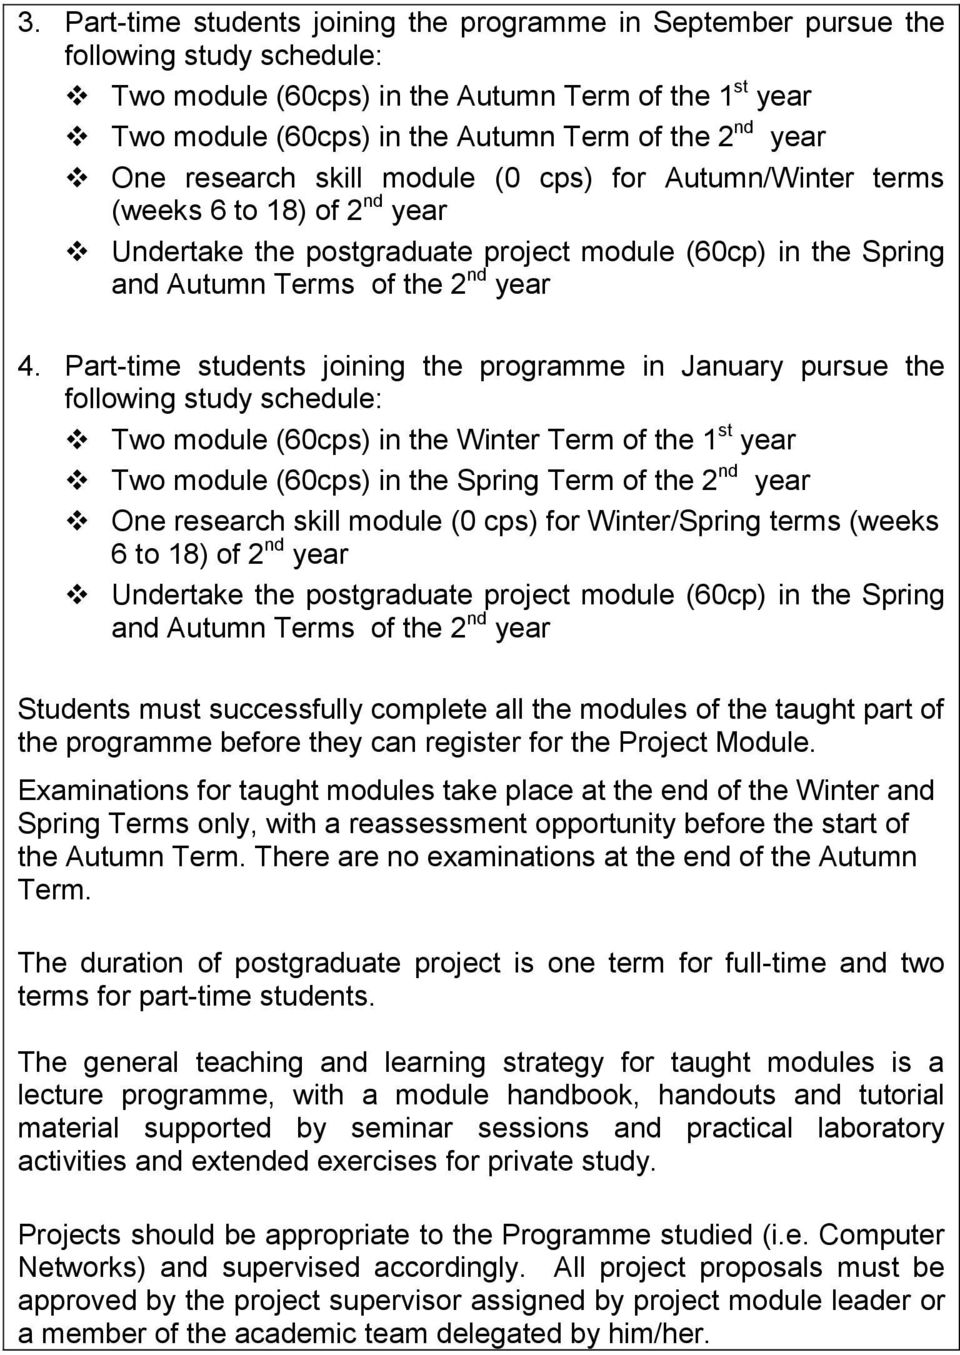 Part-time students joining the programme in January pursue the following study schedule: Two module (60cps) in the Winter Term of the 1 st year Two module (60cps) in the Spring Term of the 2 nd year